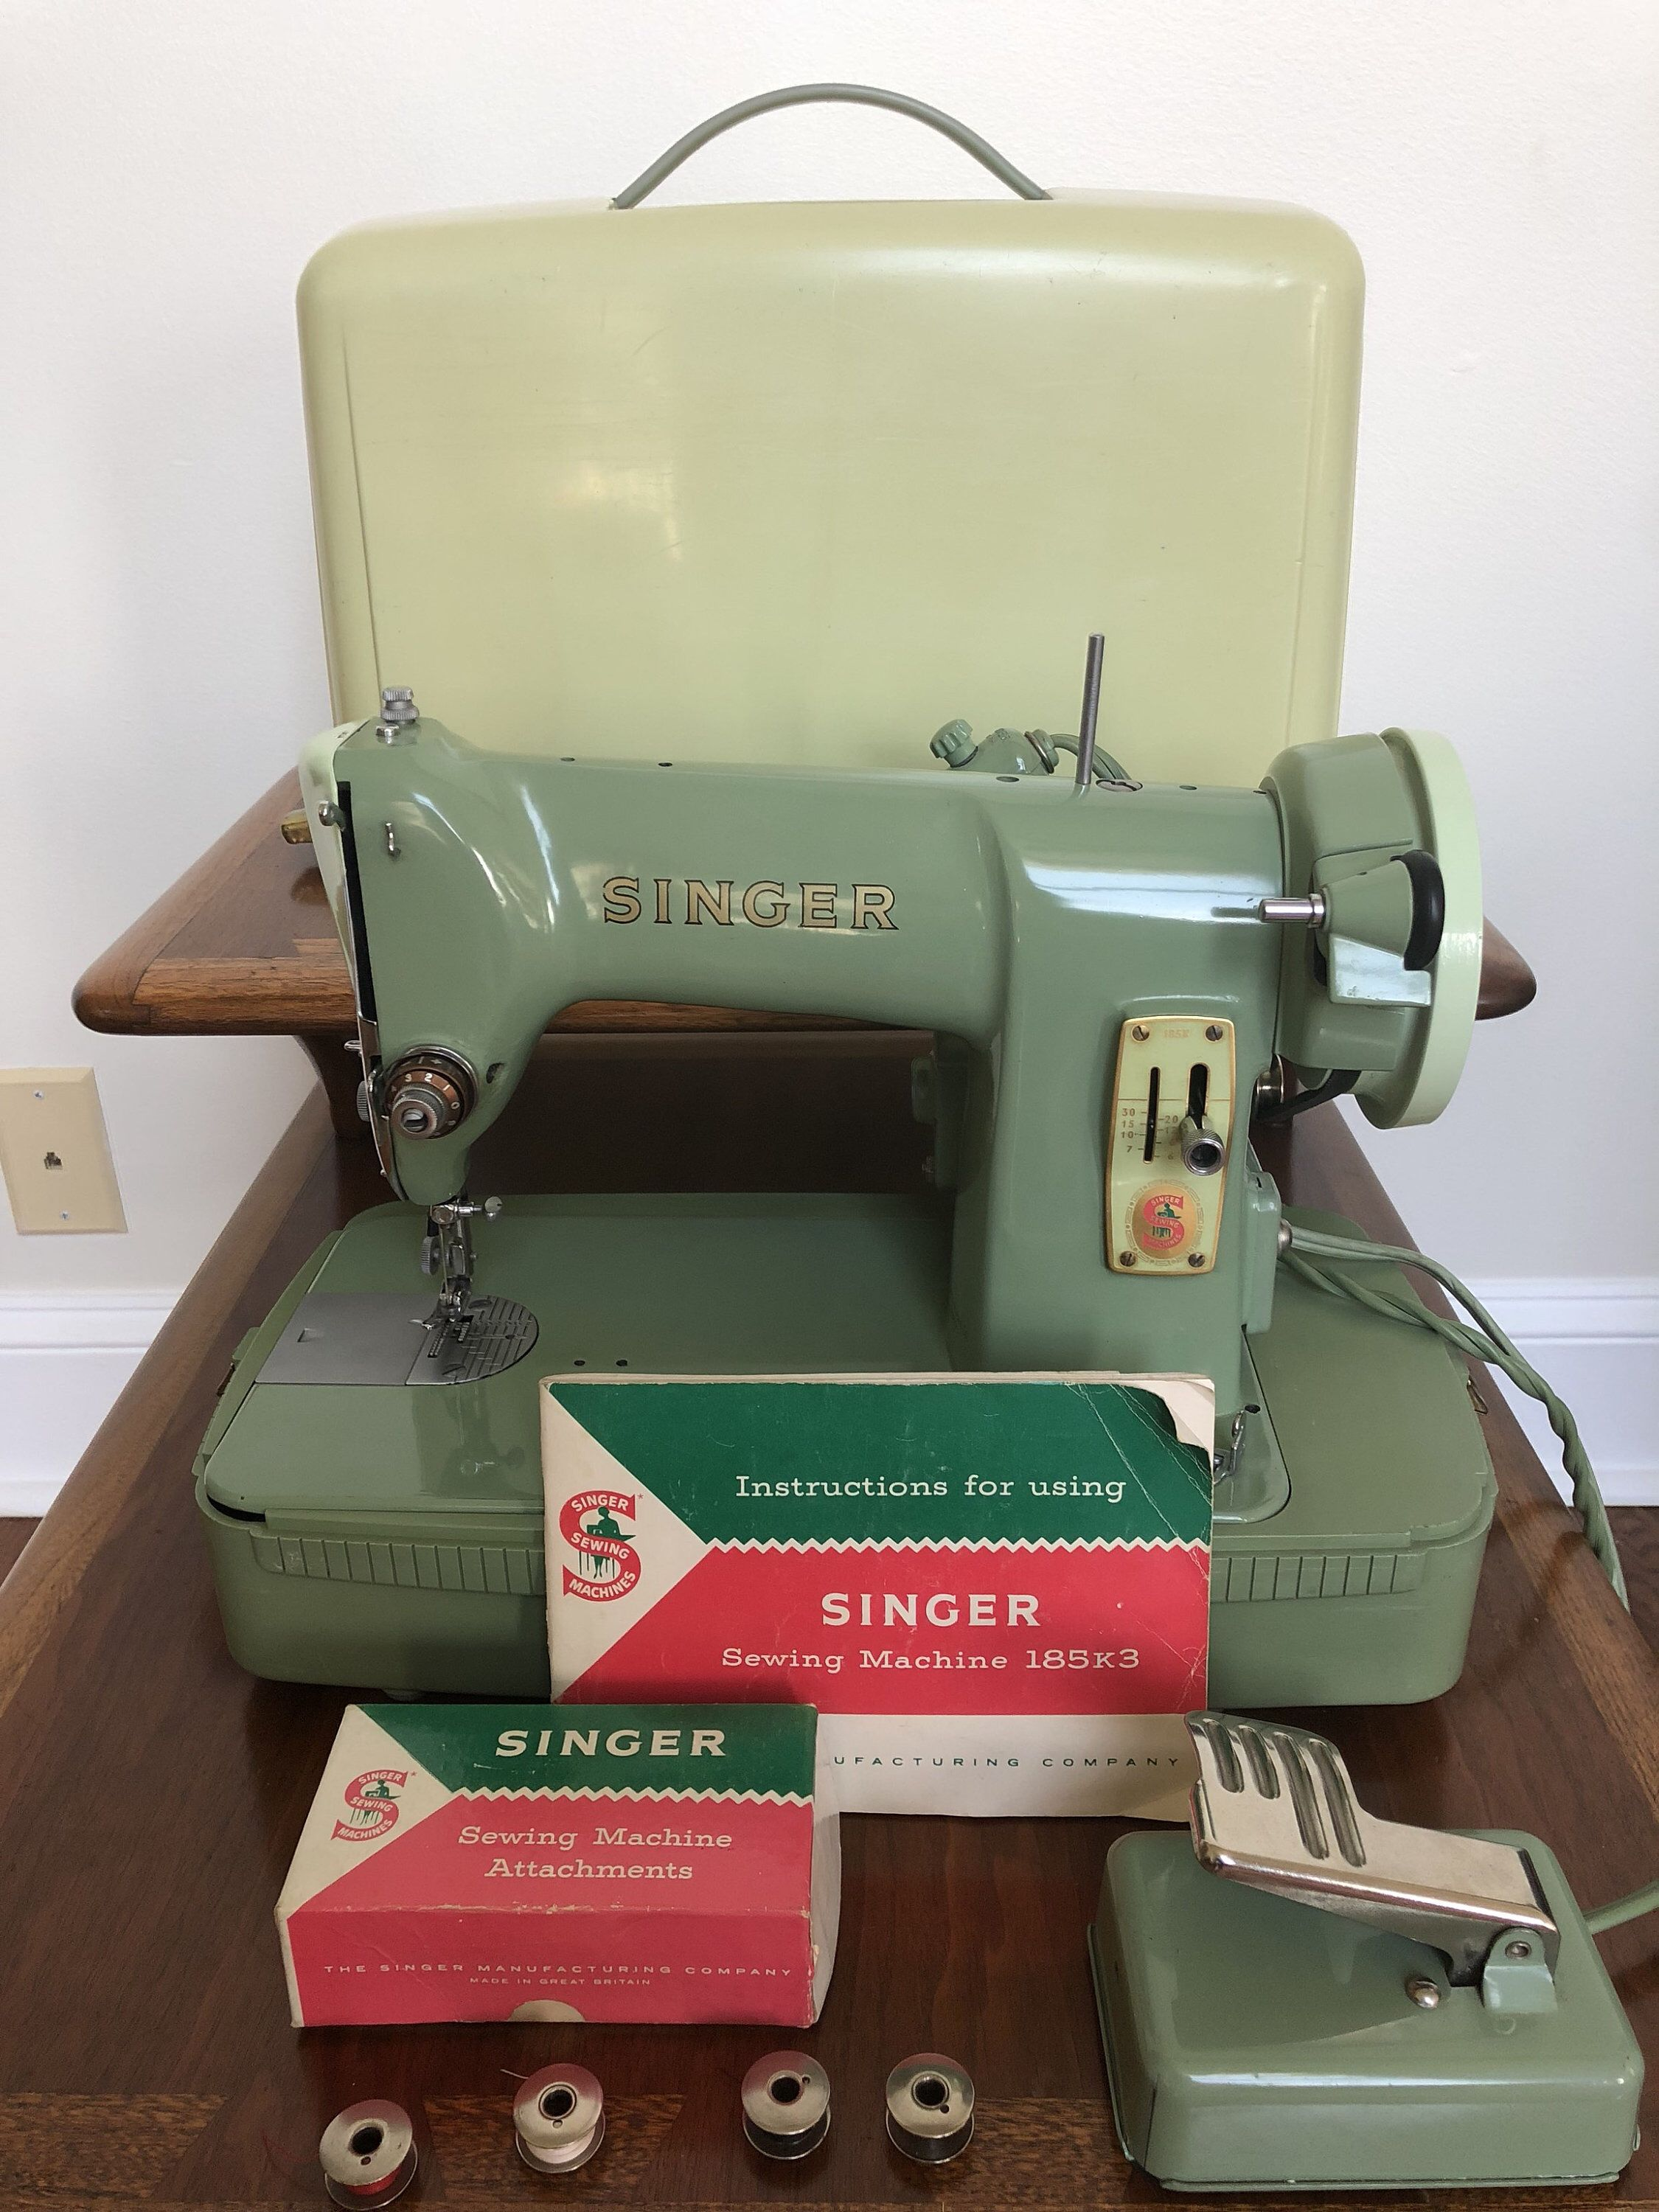 What Singer Sewing Machine Should I Buy